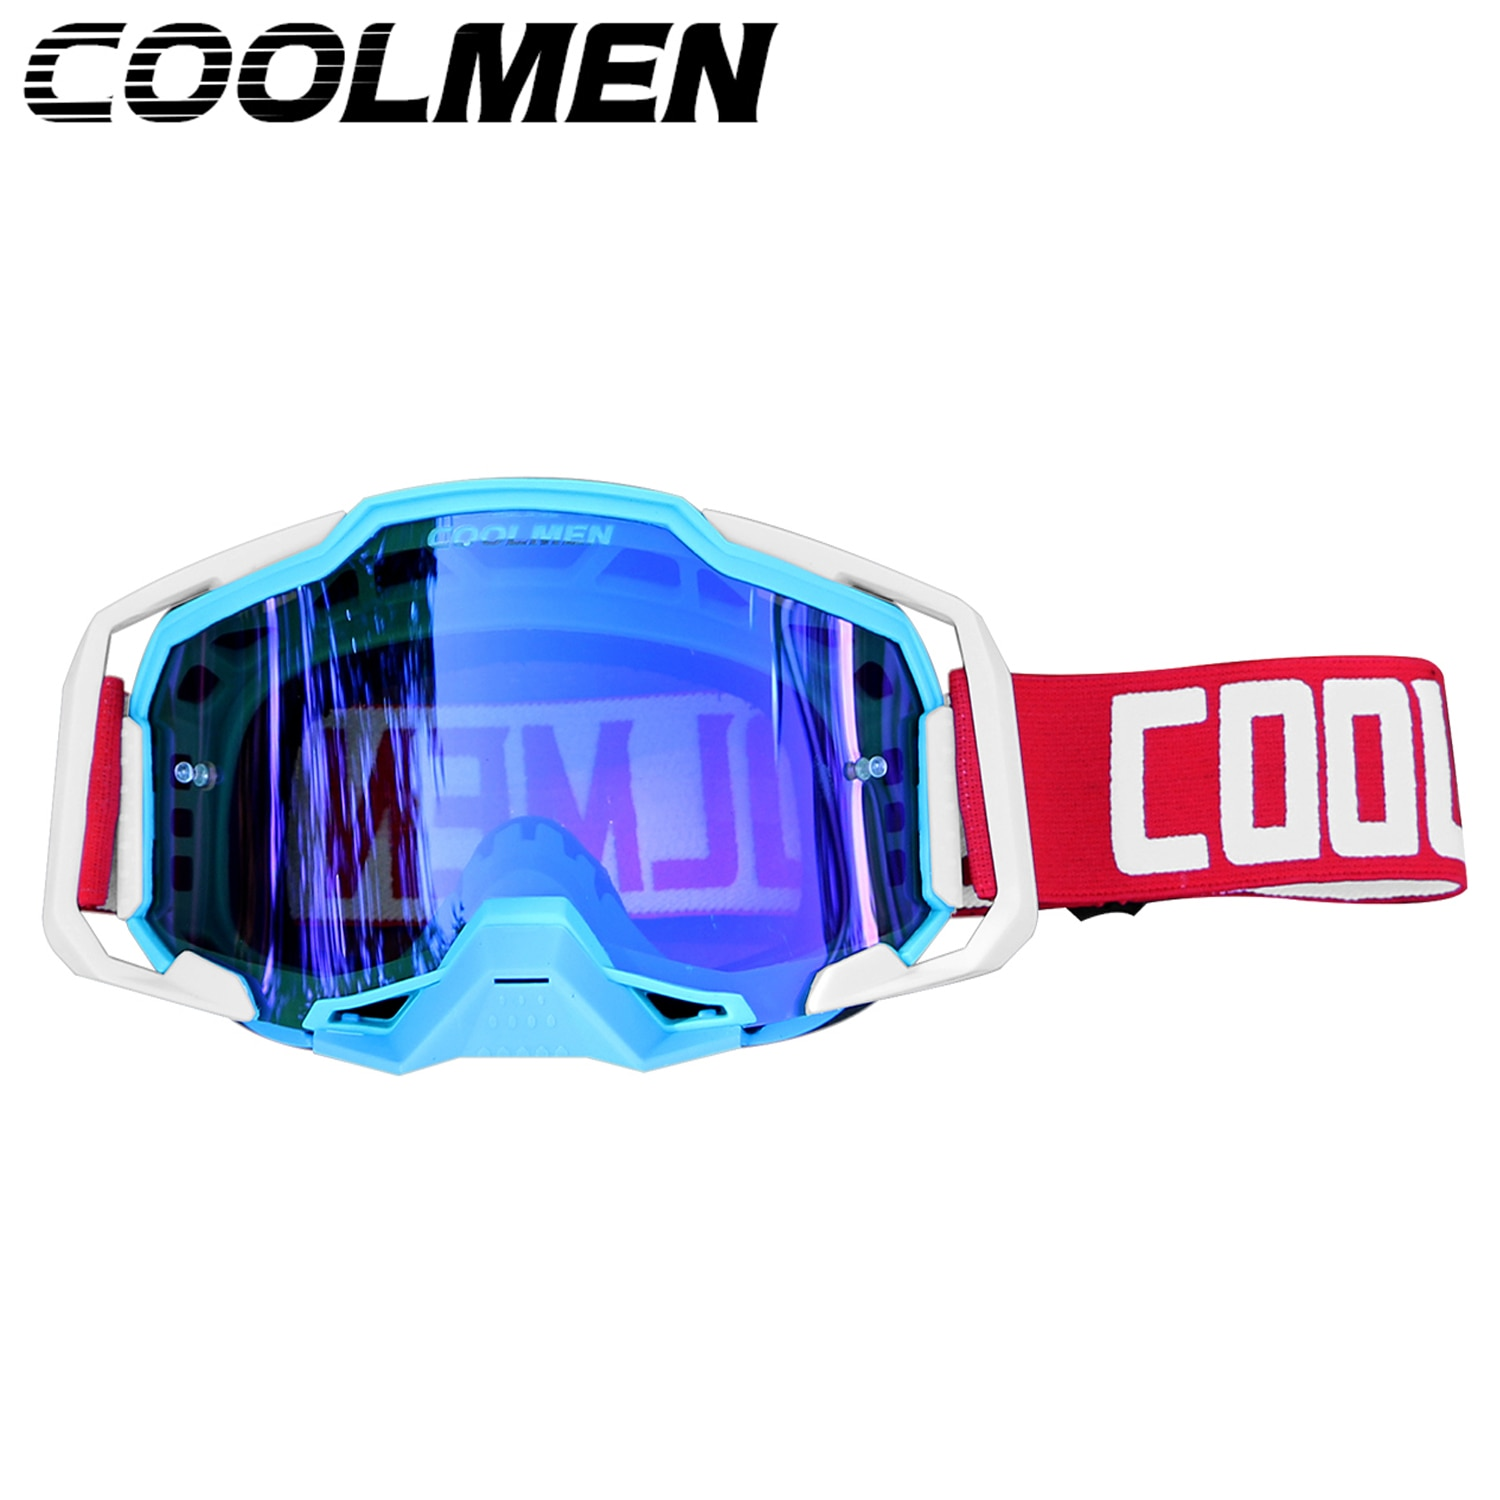 2021 Newest Motorcycle Sunglasses Motocross Safety Protective MX ATV Helmet Goggles Moto Accessories Driving Glasses For Sale motorcycle atv riding scooter driving flying protective frame clear lens portable vintage helmet goggles glasses for 2009 buell xb12r